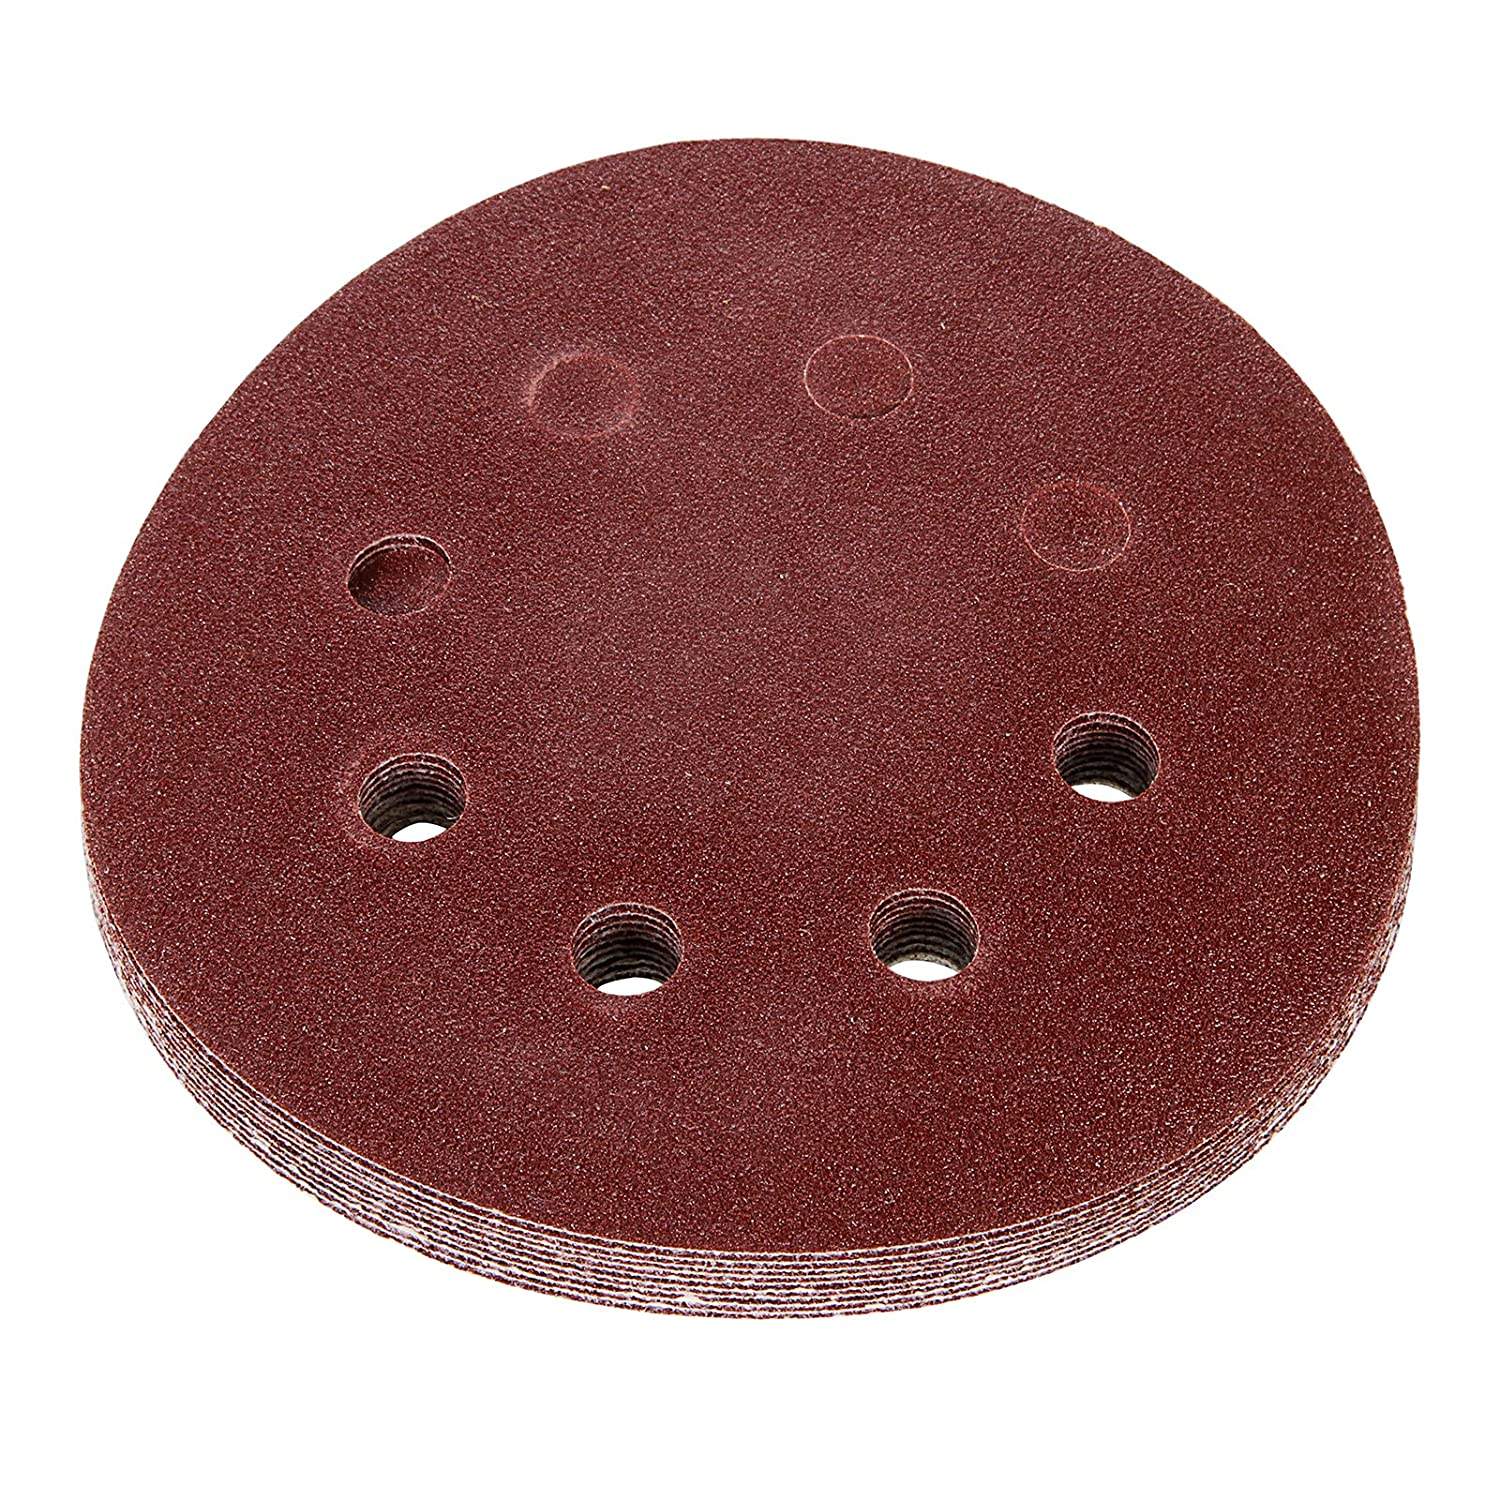 Anmas 100pcs// 5-Inch 8-Hole 120 Grit Dustless Hook and Loop Sanding Disc Backing Pads Sander Paper Assorted Sandpaper 1 Box